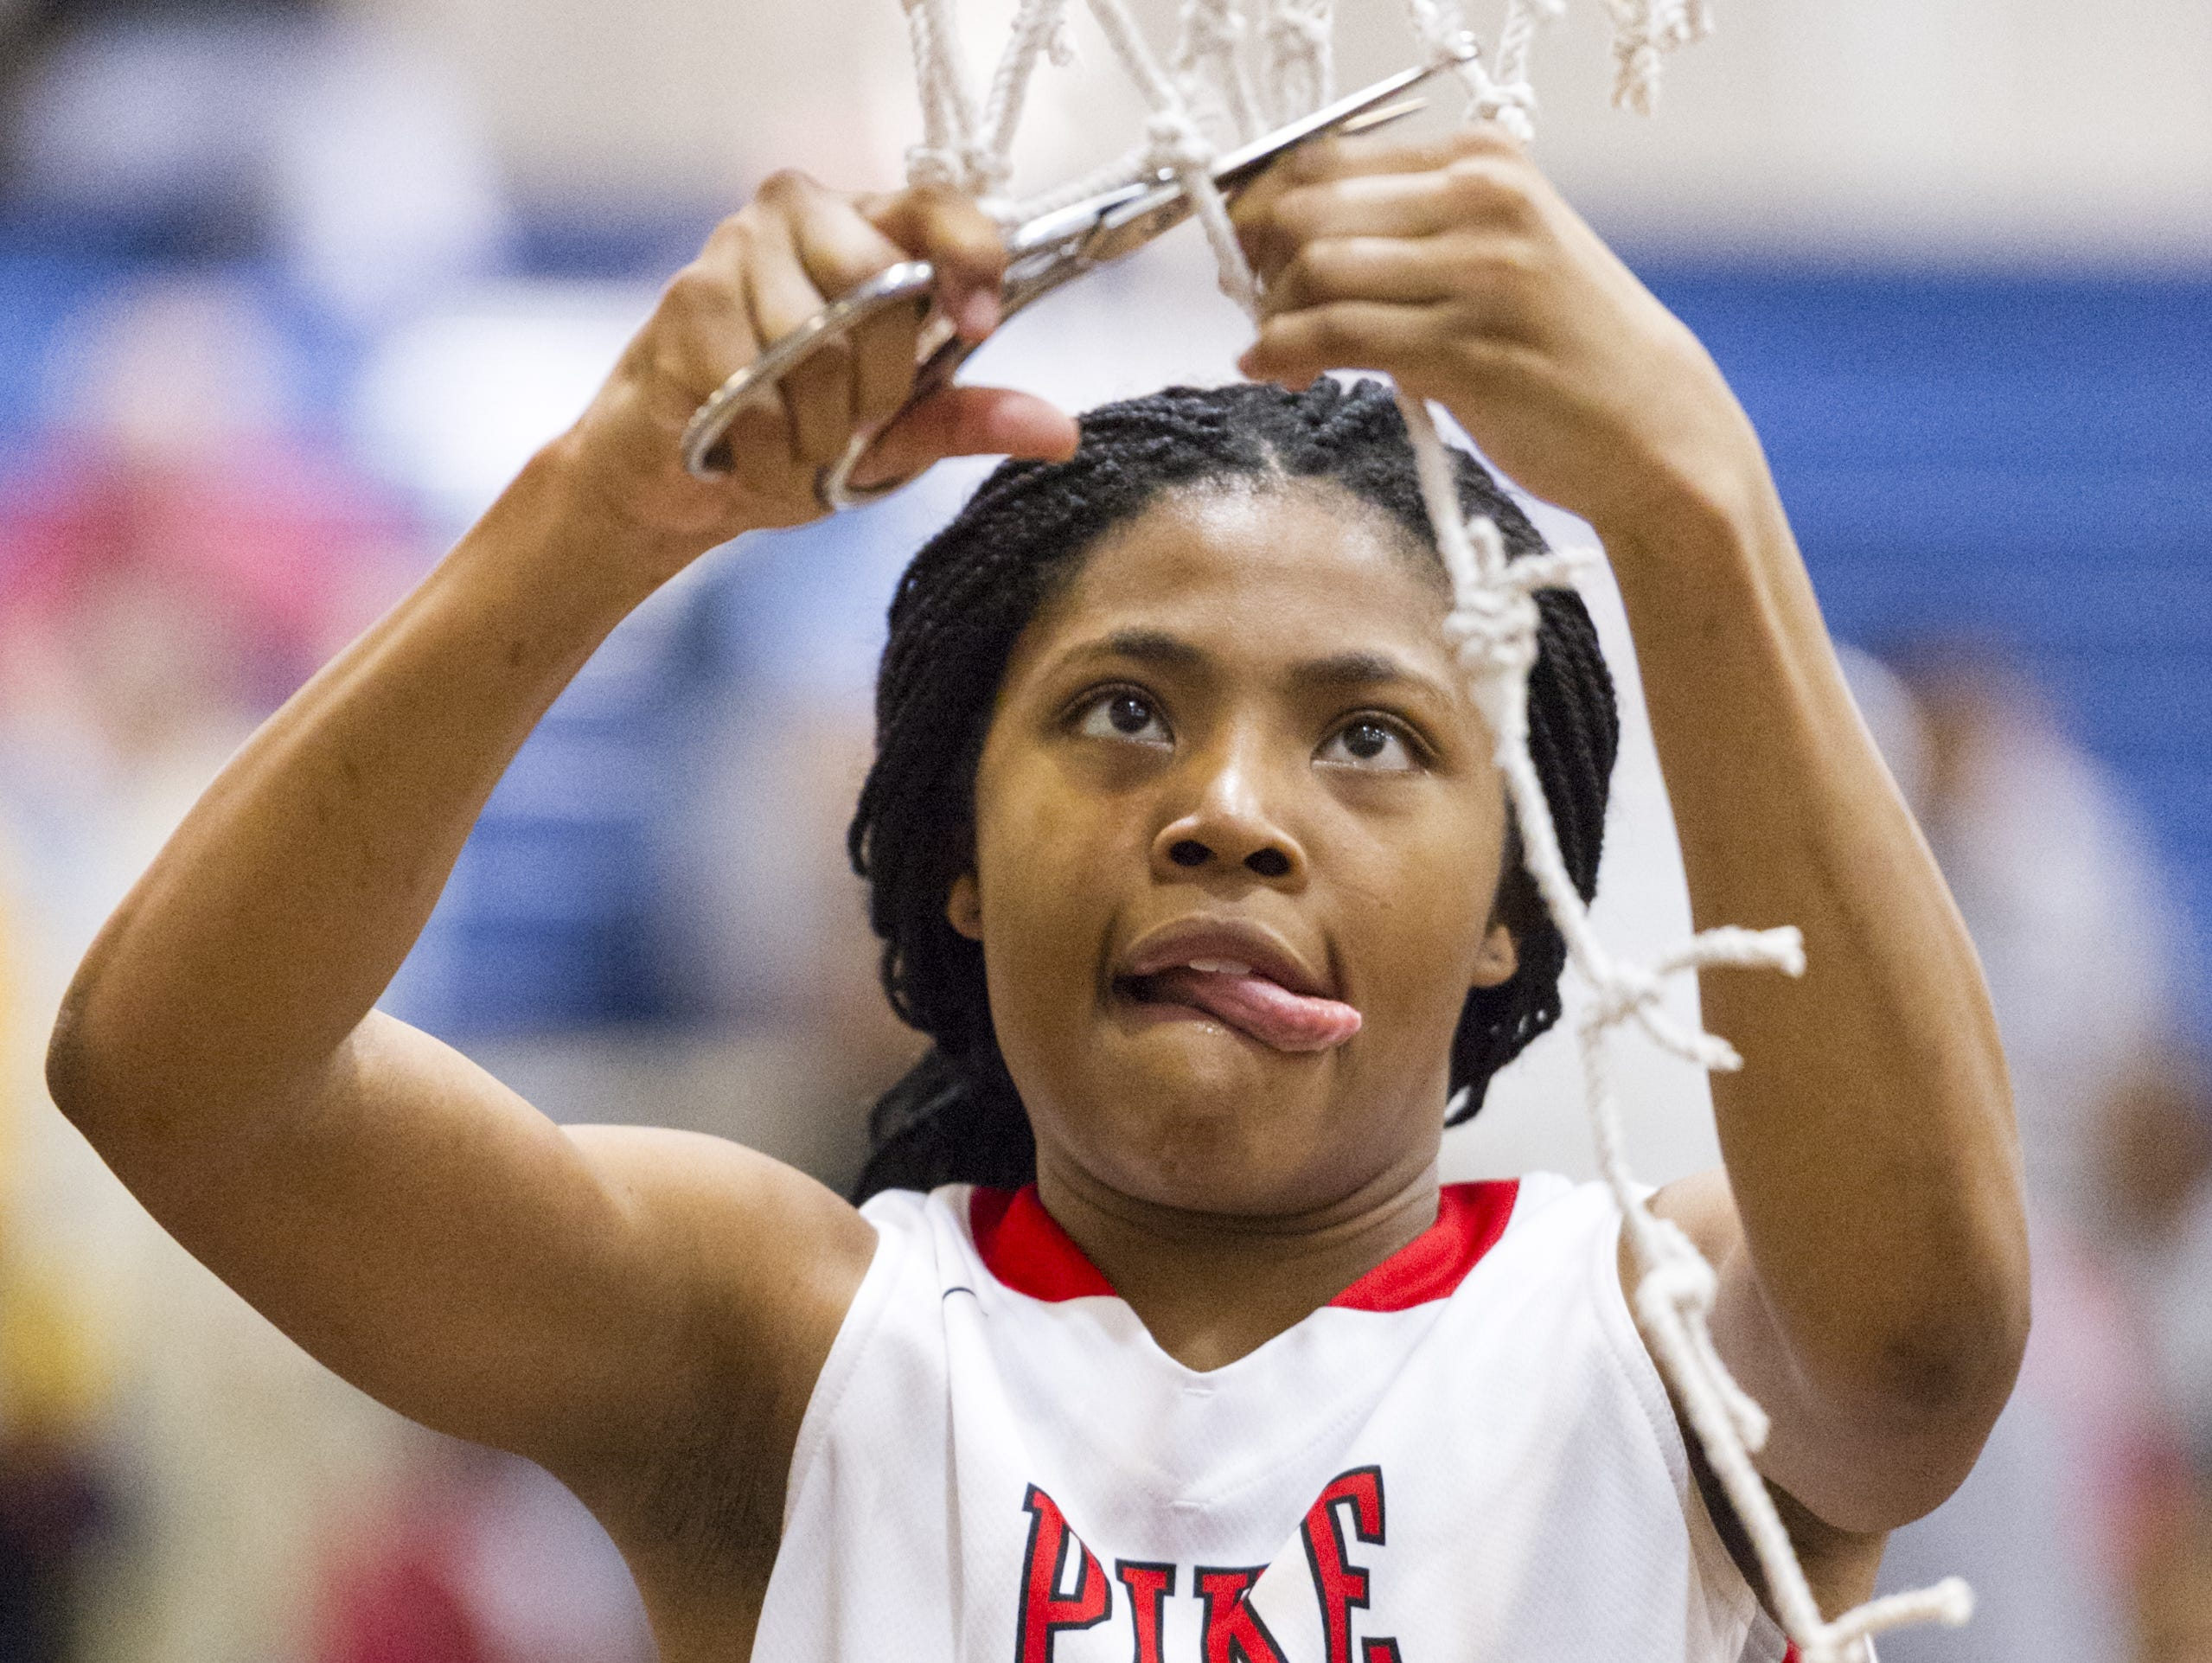 Pike junior Angel Baker (15) cuts down a piece of the net after winning the regional championship against North Central, Feb. 11, 2017. Pike won in overtime, 61-59.